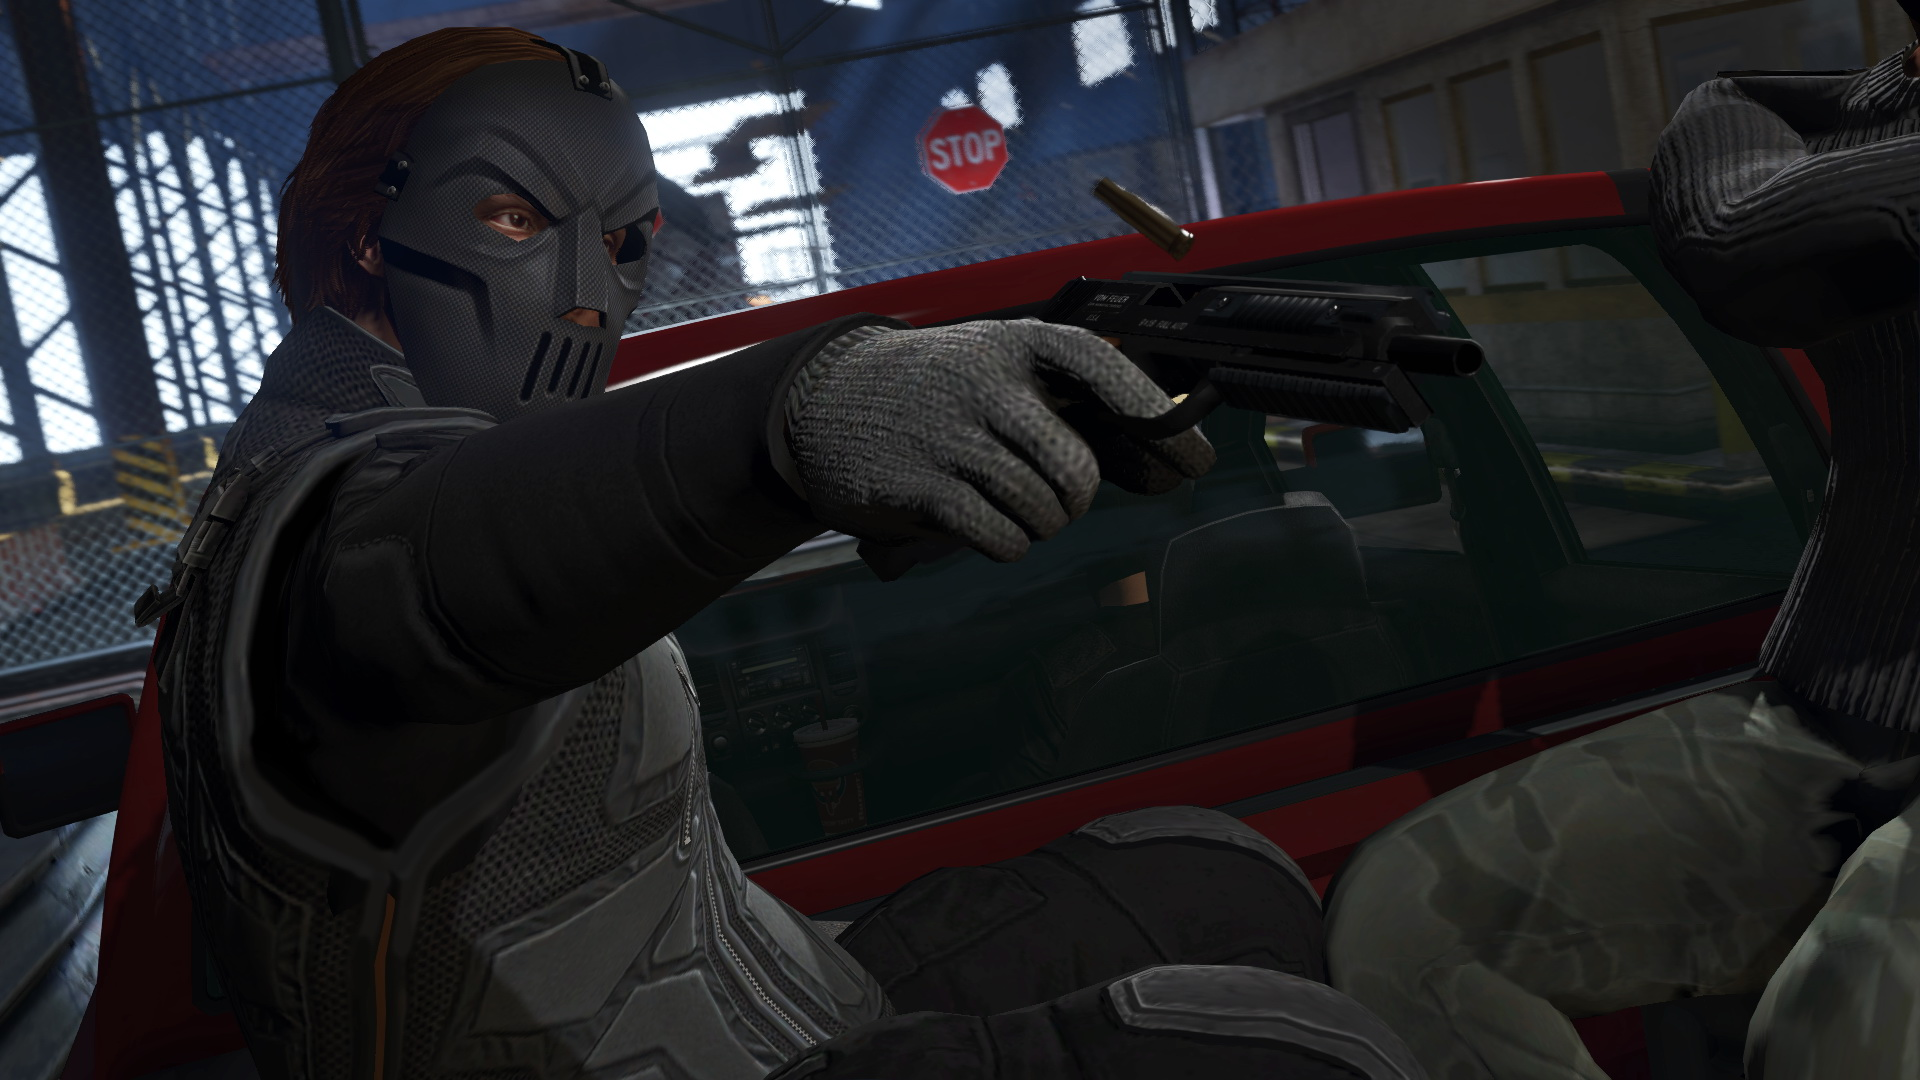 Pics photos grand theft auto iv the law breaking spree continues -  Image 18